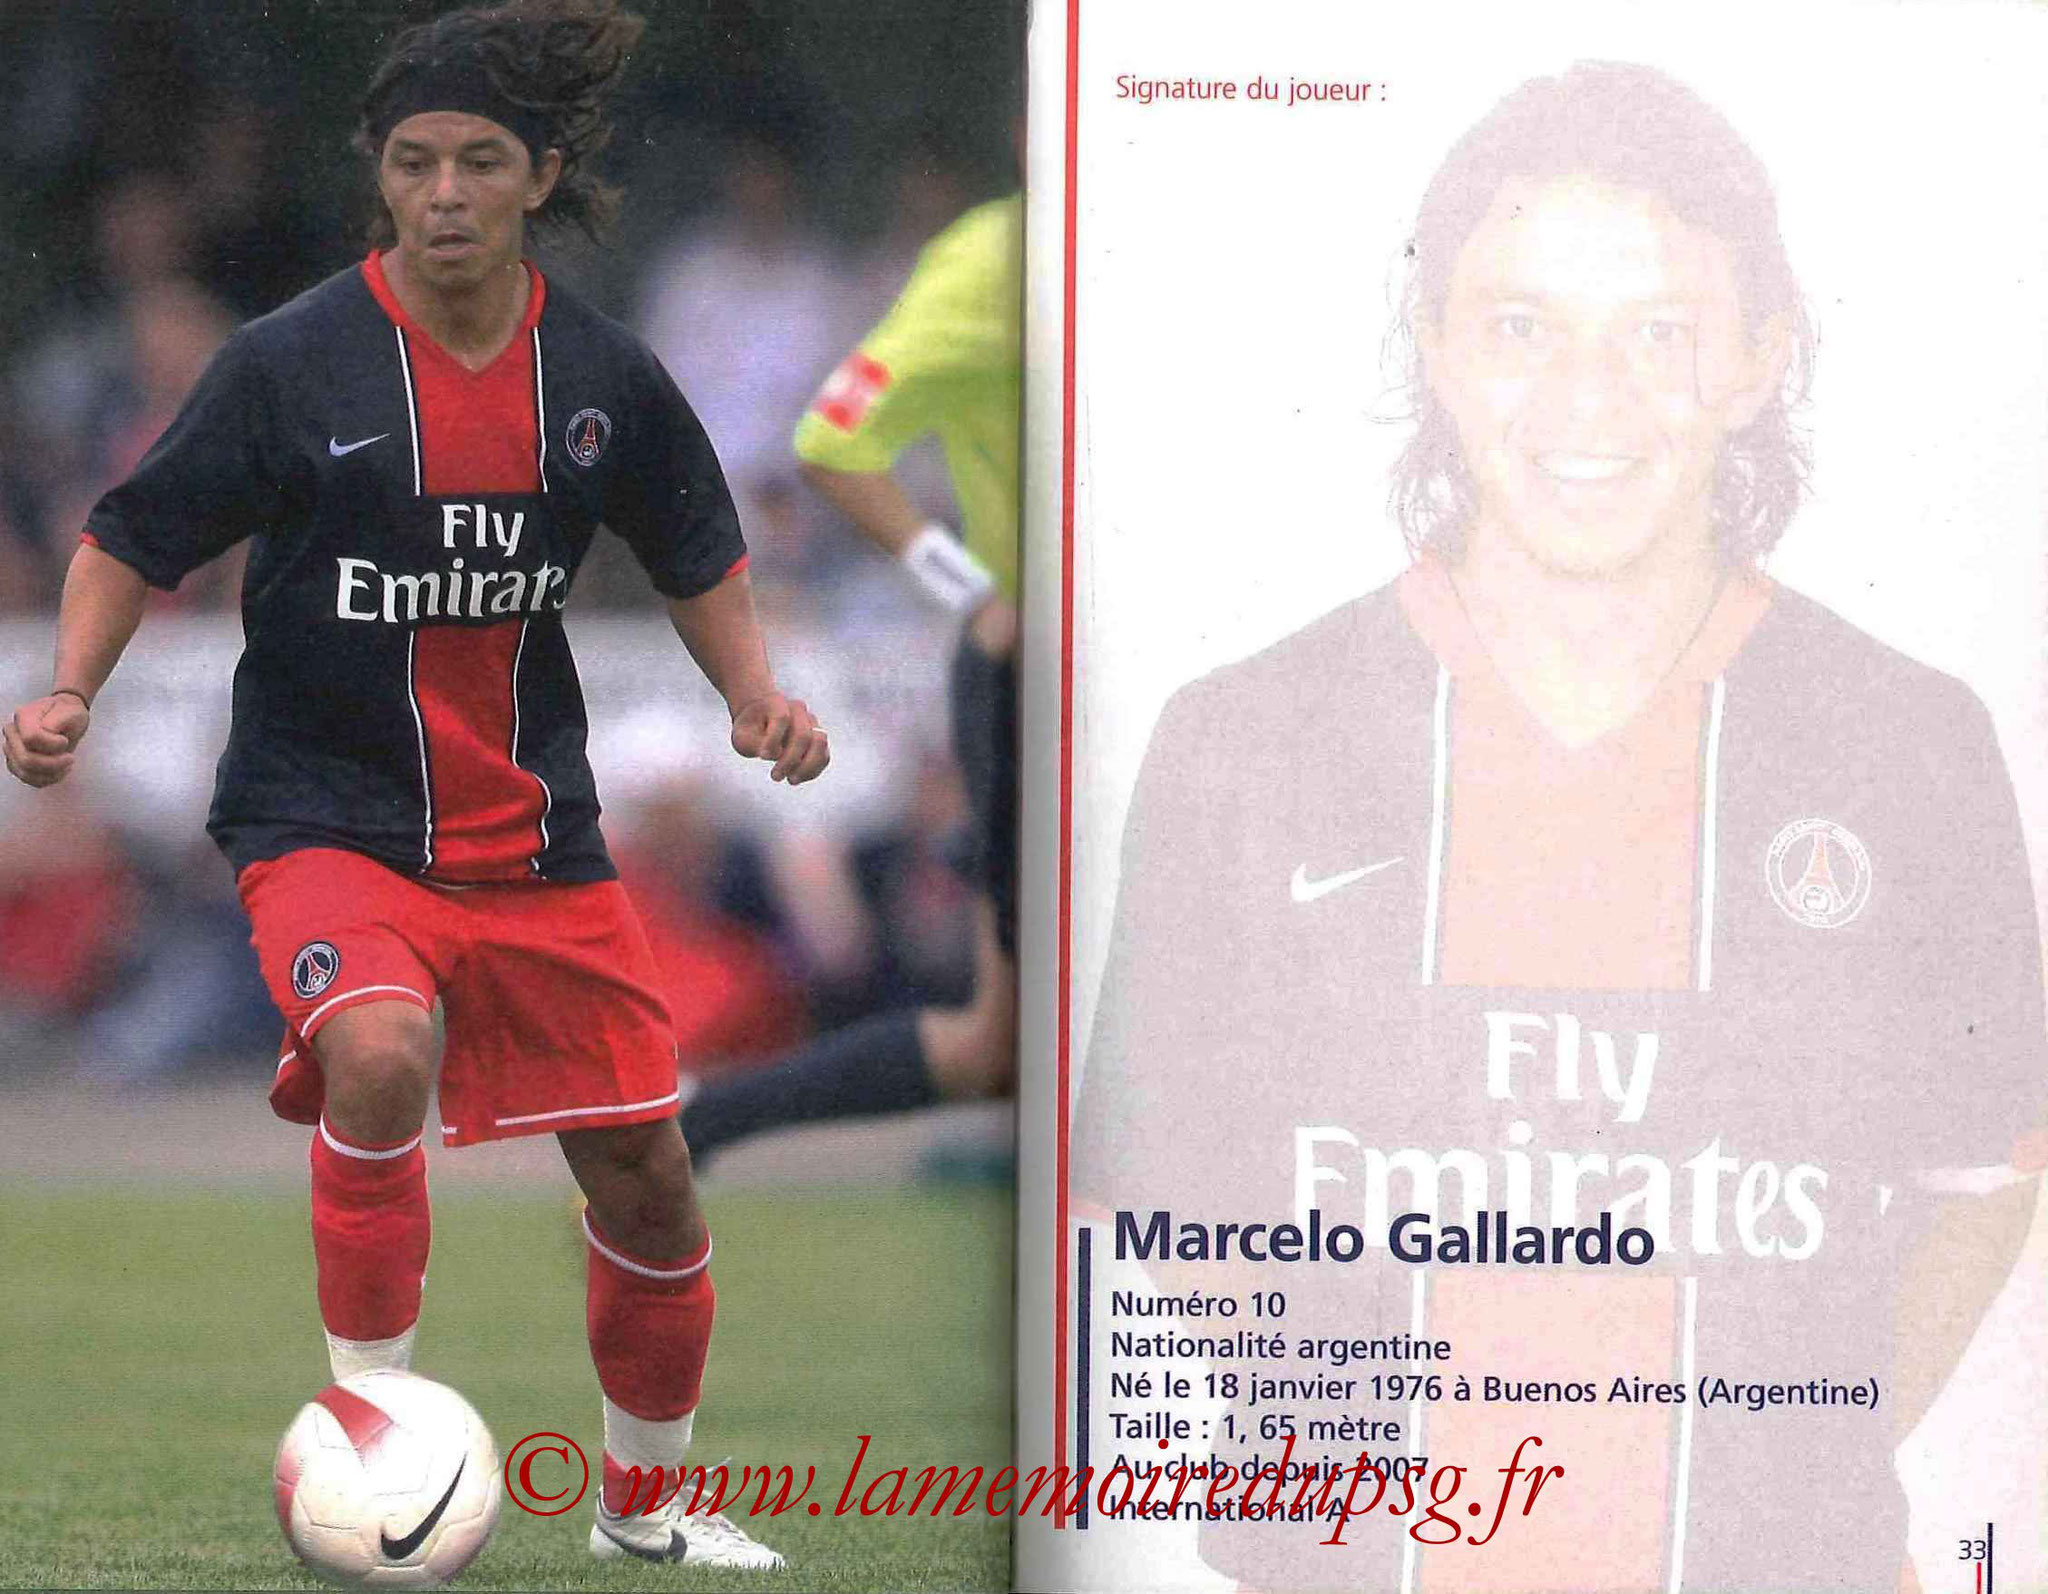 2007-08 - Guide de la Saison PSG - Pages 32 et 33 - Marcelo GALLARDO